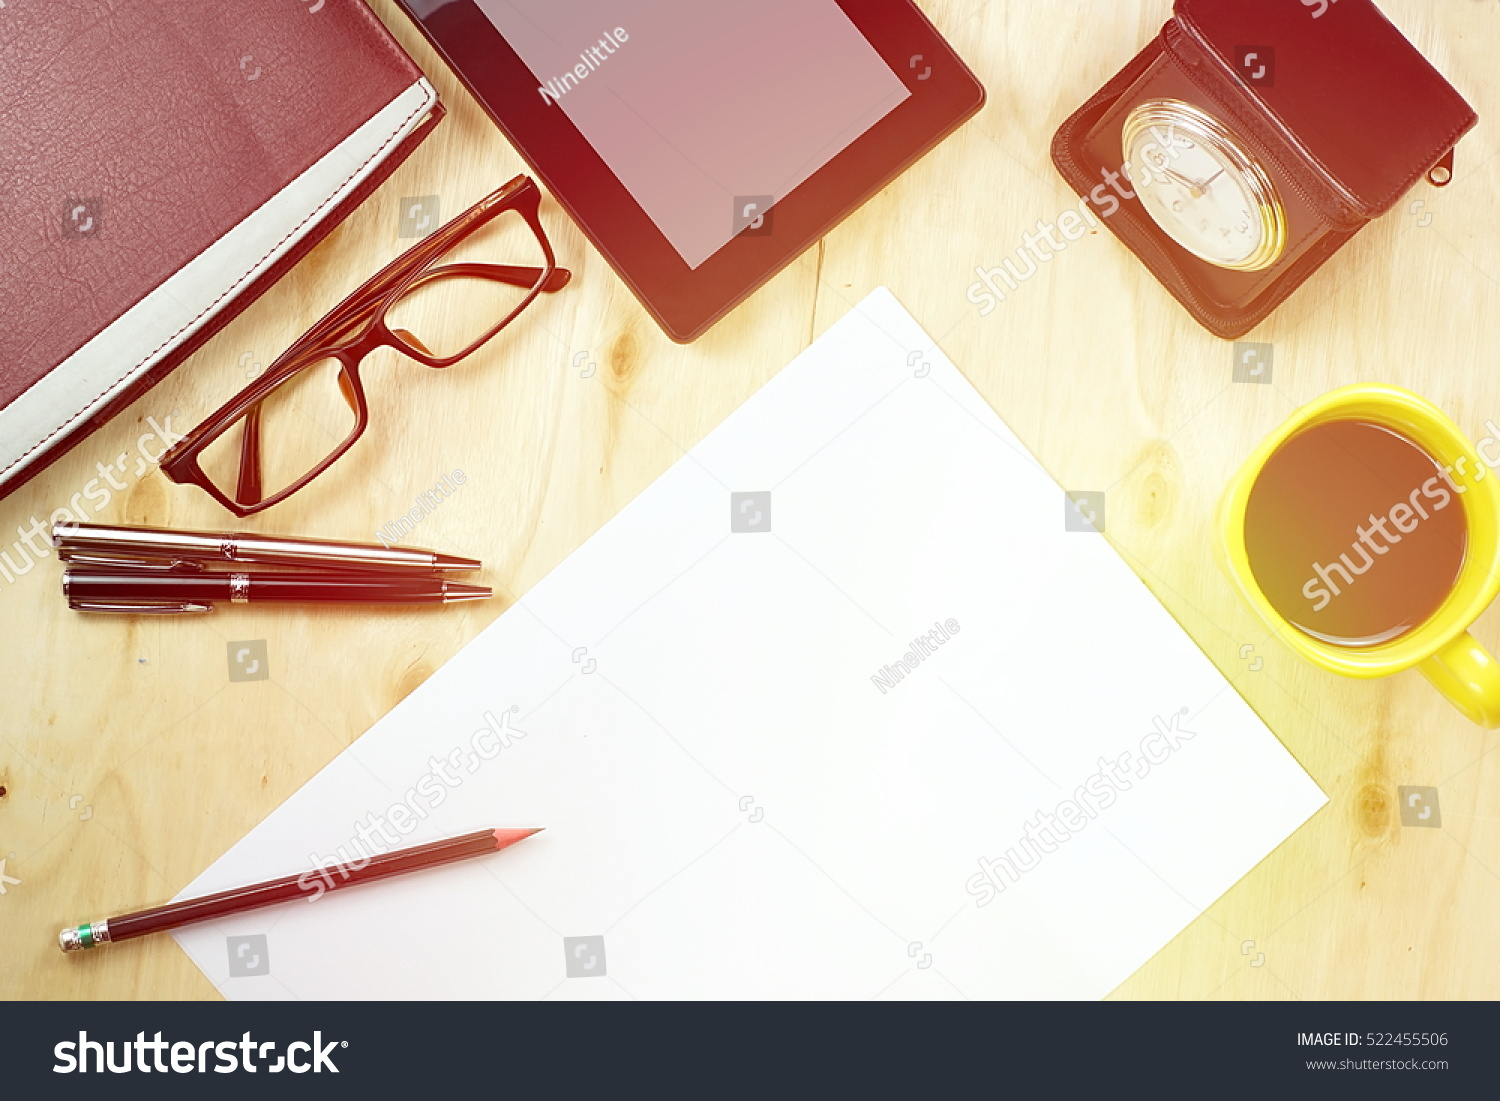 Office table desk top view tablet stock photo 522455506 shutterstock office table desk top view with tablet pca cup of coffee pen geotapseo Image collections